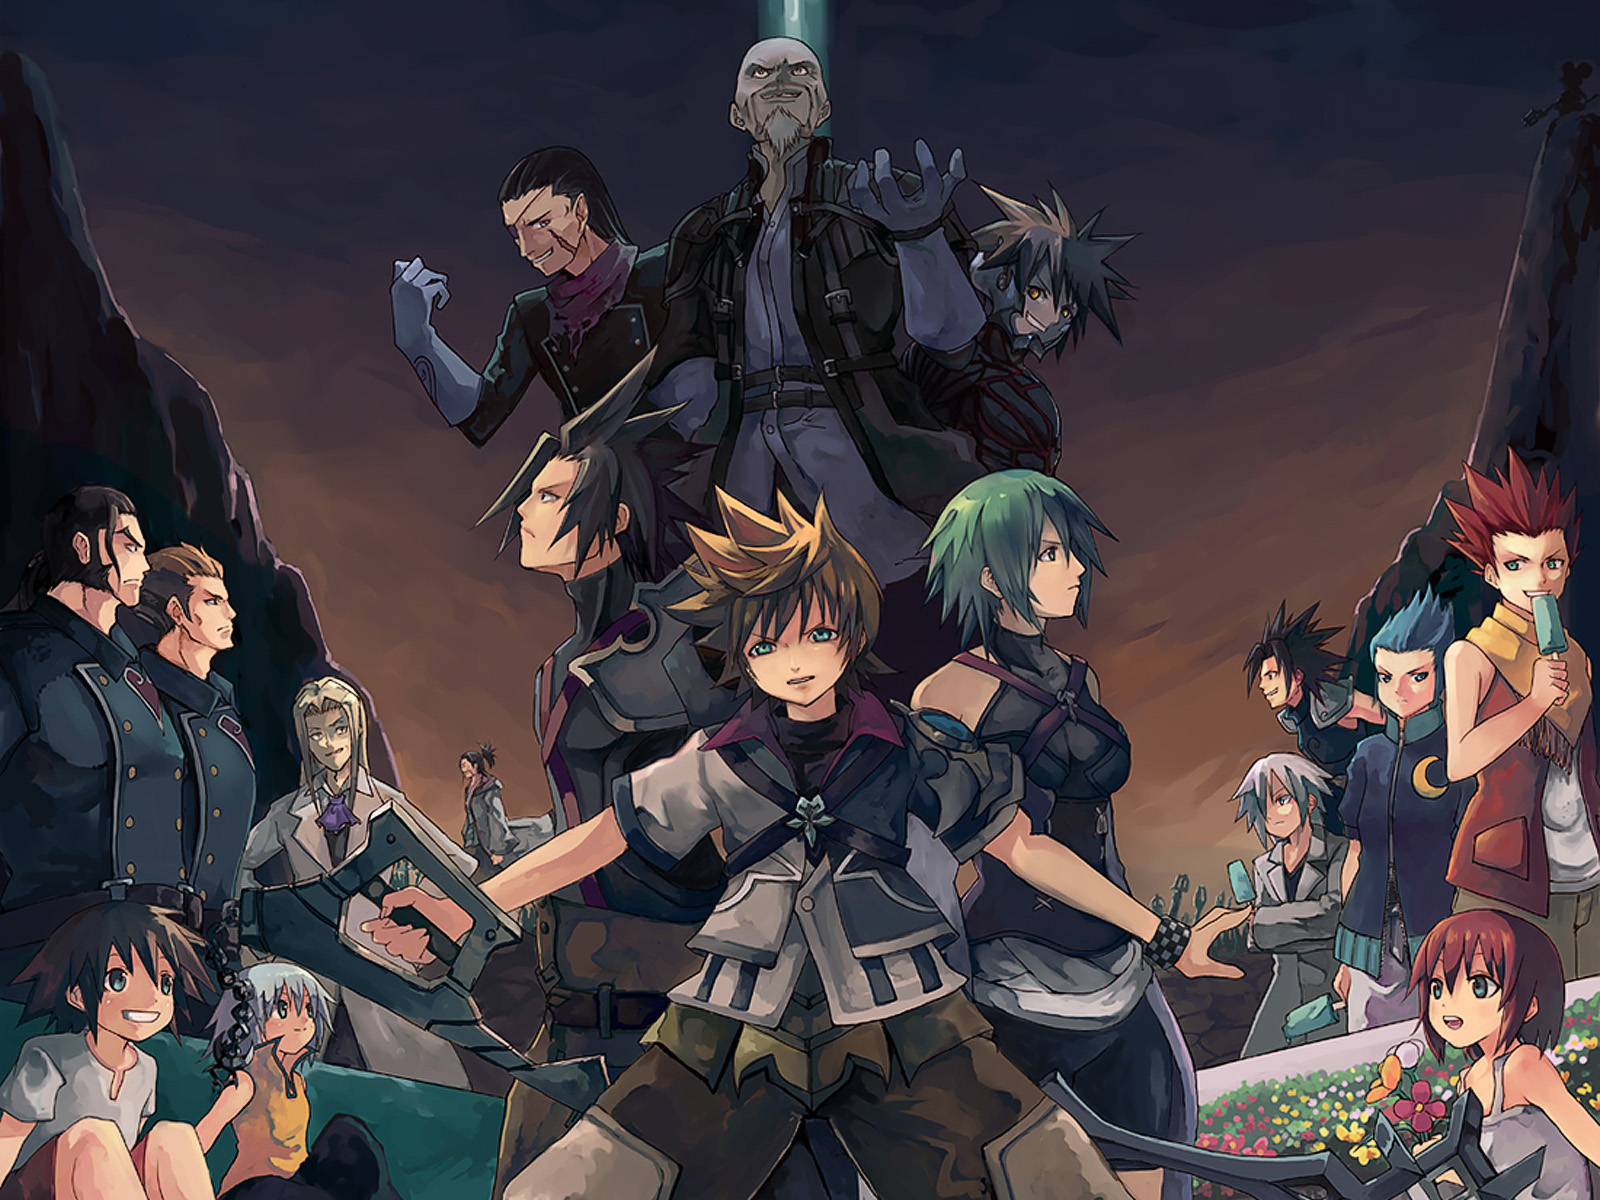 kingdom hearts games cool wallpapers kingdom hearts high definition 1600x1200